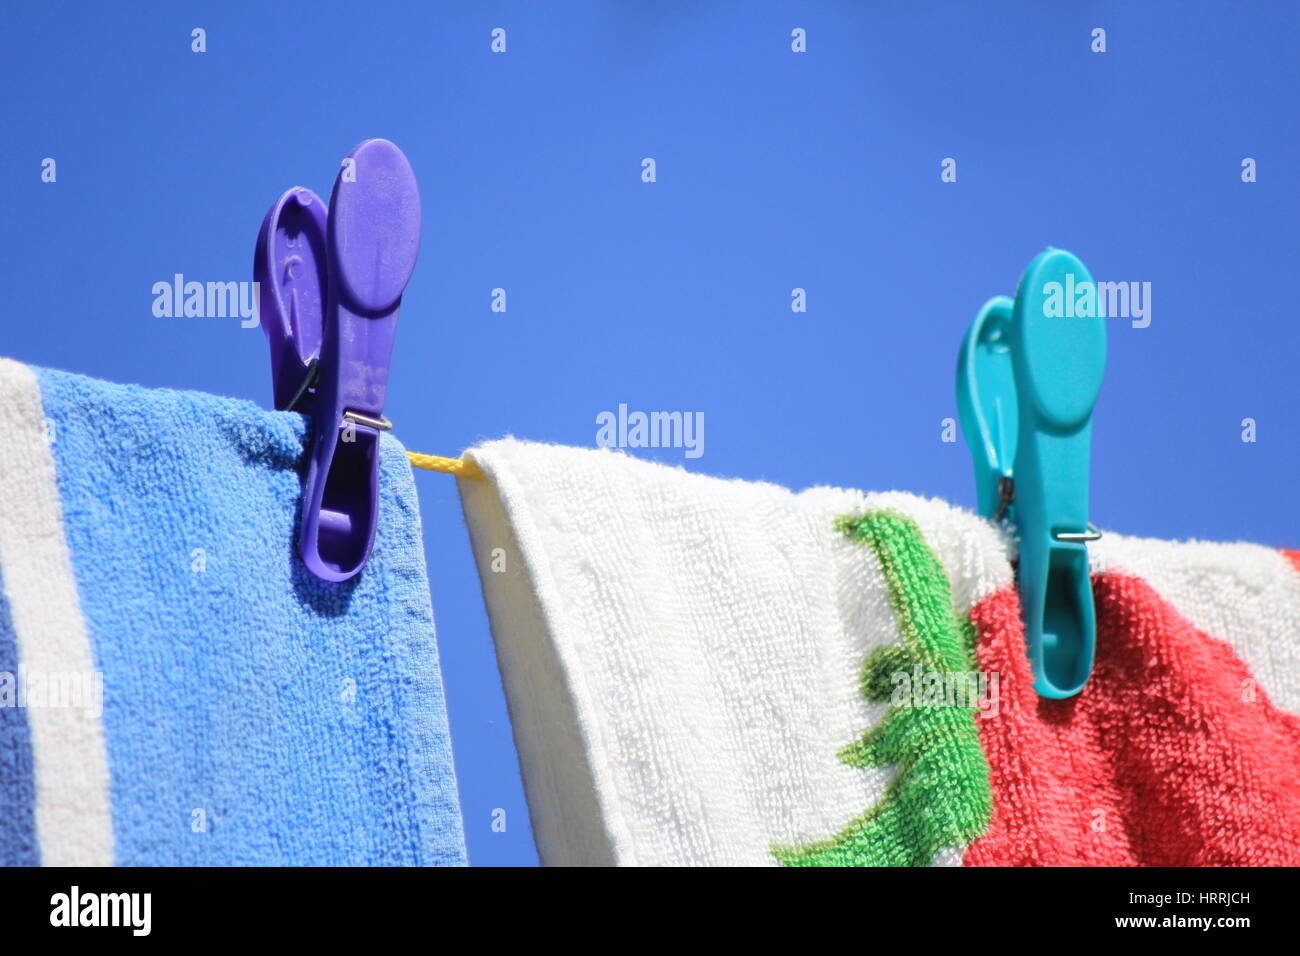 Bright colored towels pegged to a washing line against a clear blue sky - Stock Image